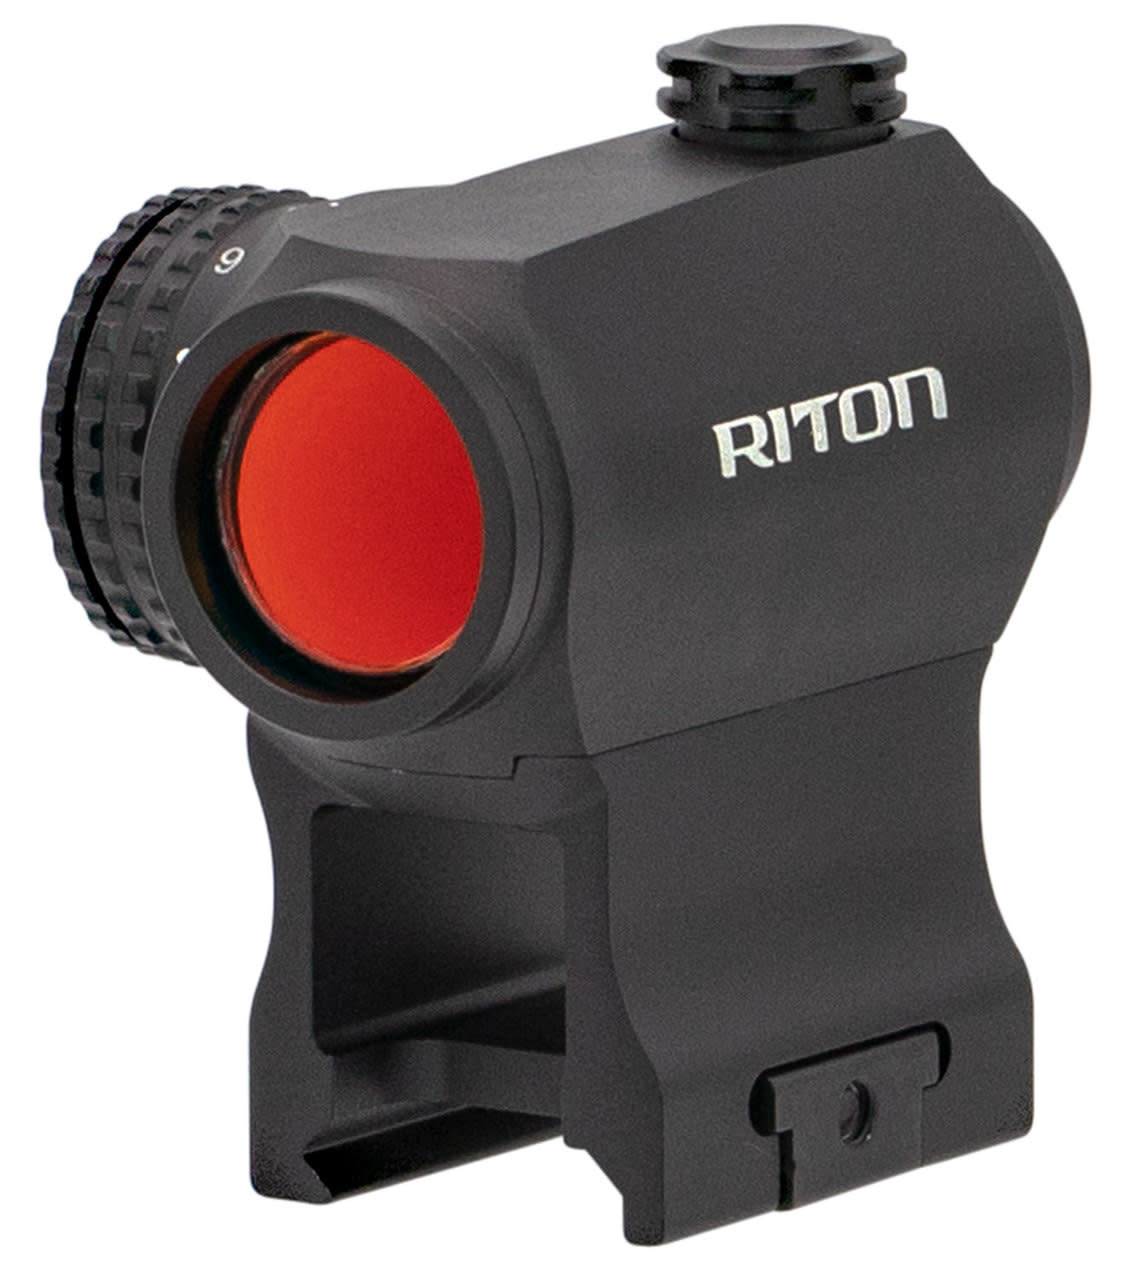 Riton RT-R Mod 3 Micro Red Dot